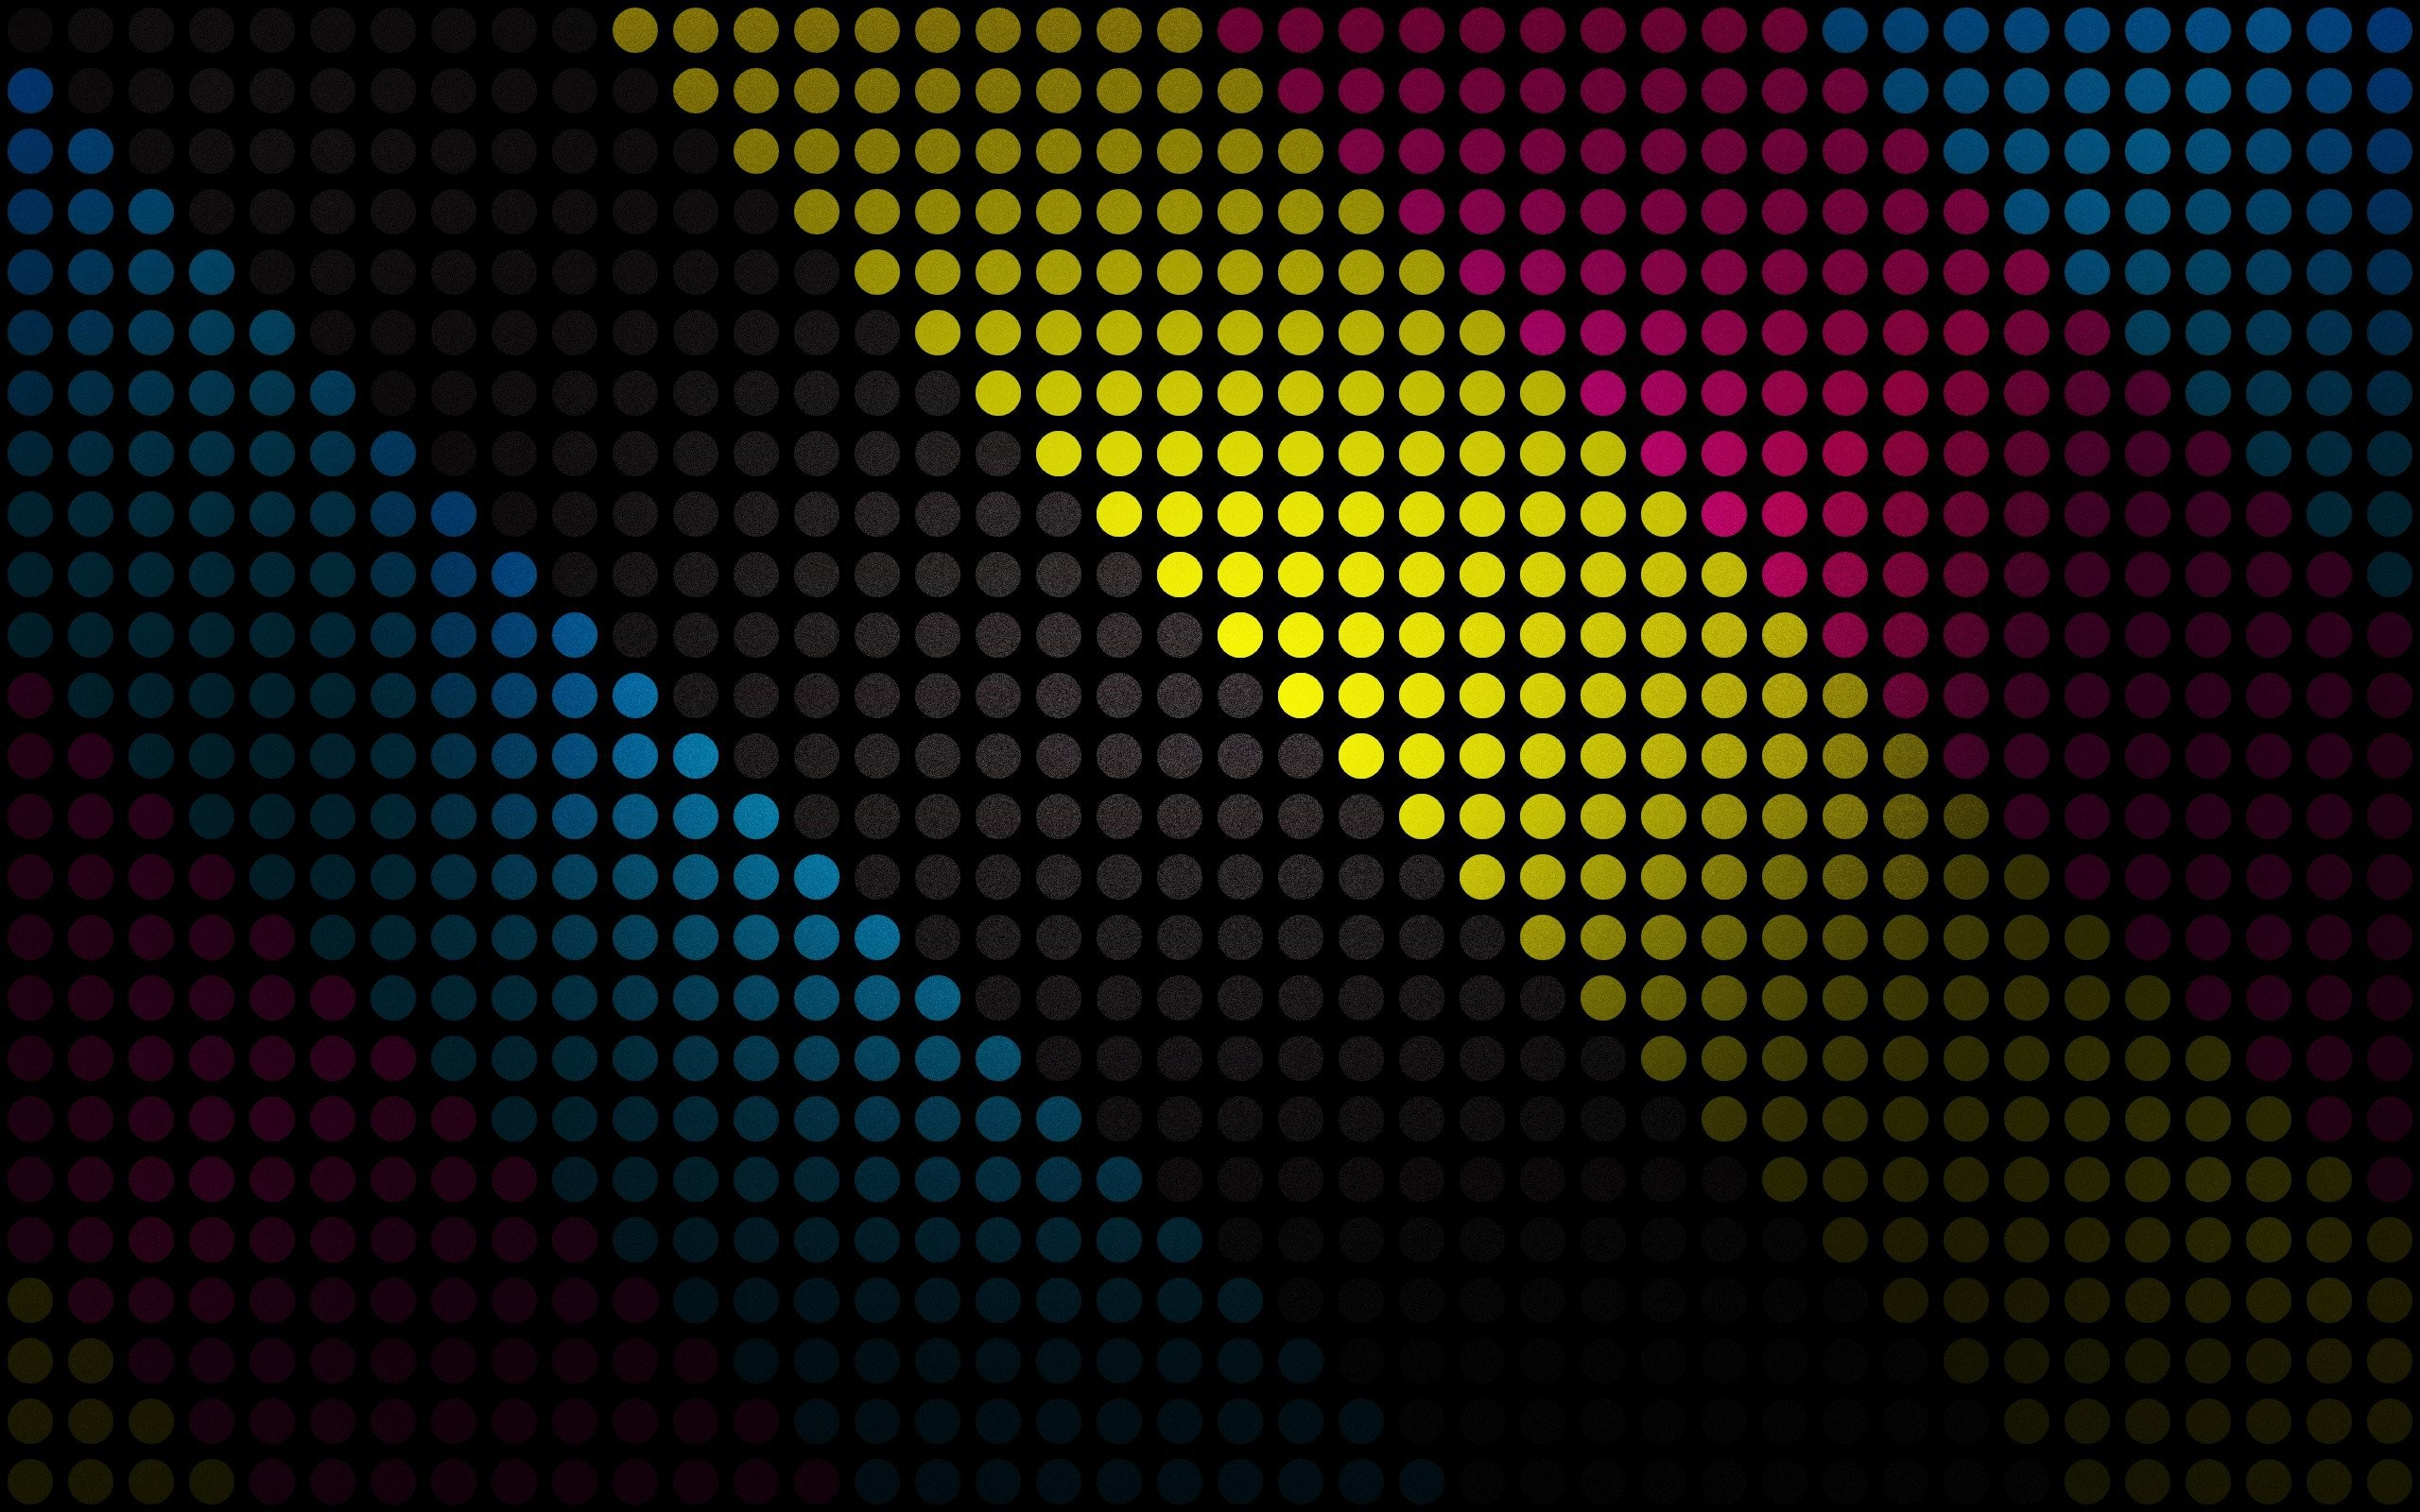 2560x1600 30 wallpapers perfect for AMOLED screens